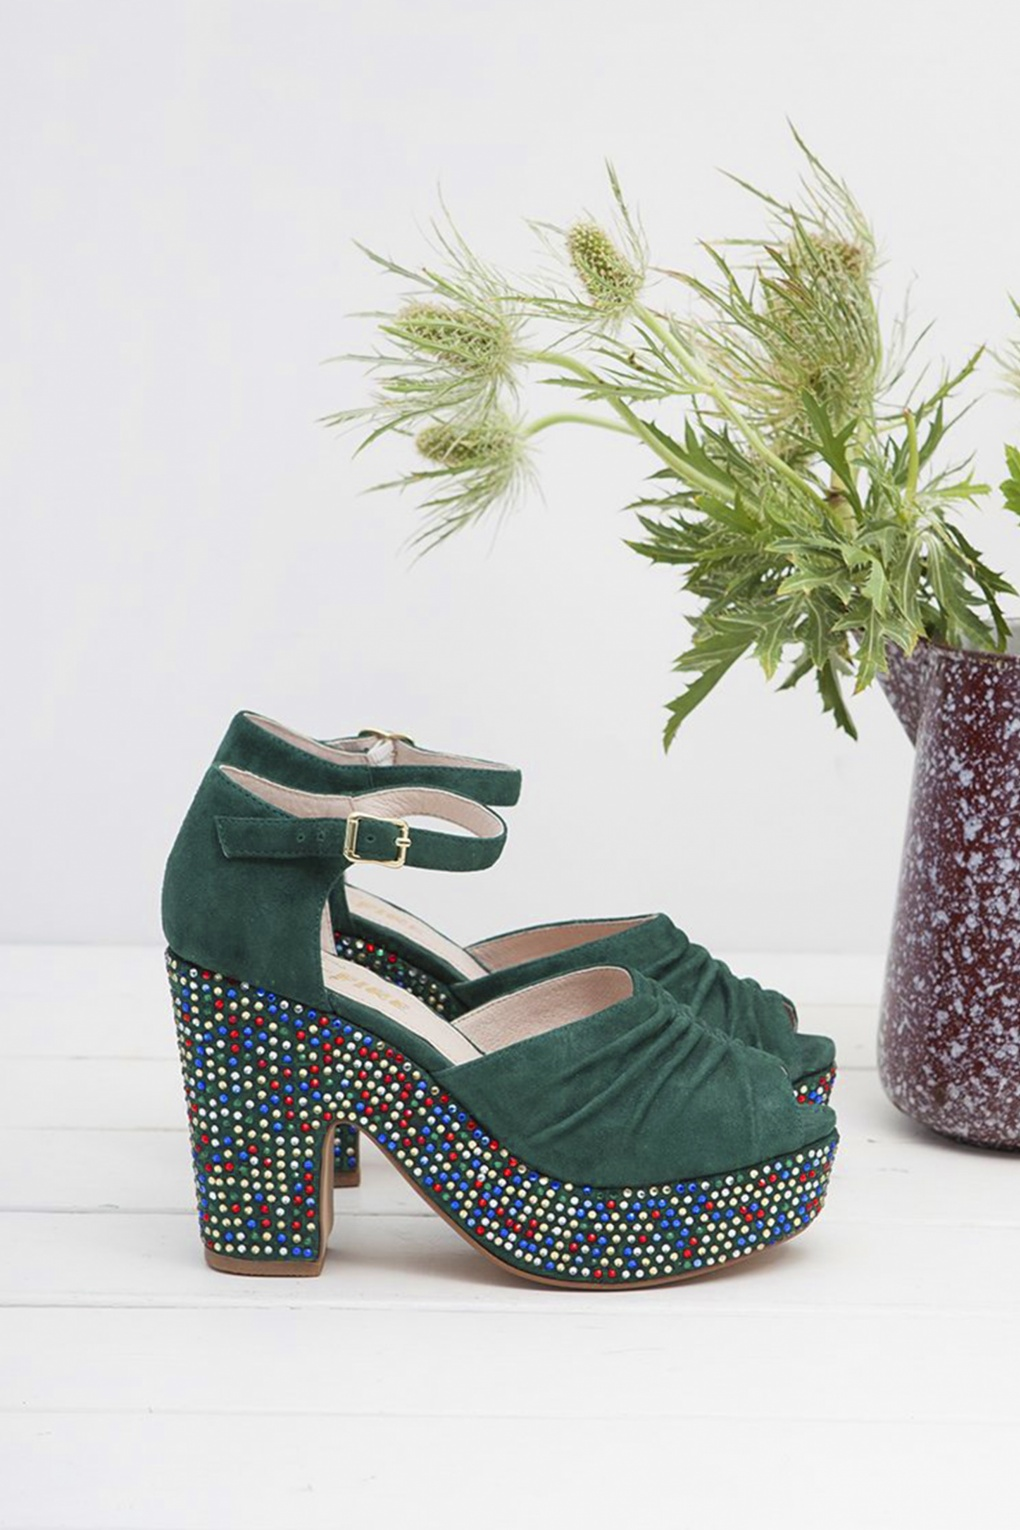 60s Shoes, Boots | 70s Shoes, Platforms, Boots 70s Maria Peeptoe Sandals in Green £170.85 AT vintagedancer.com